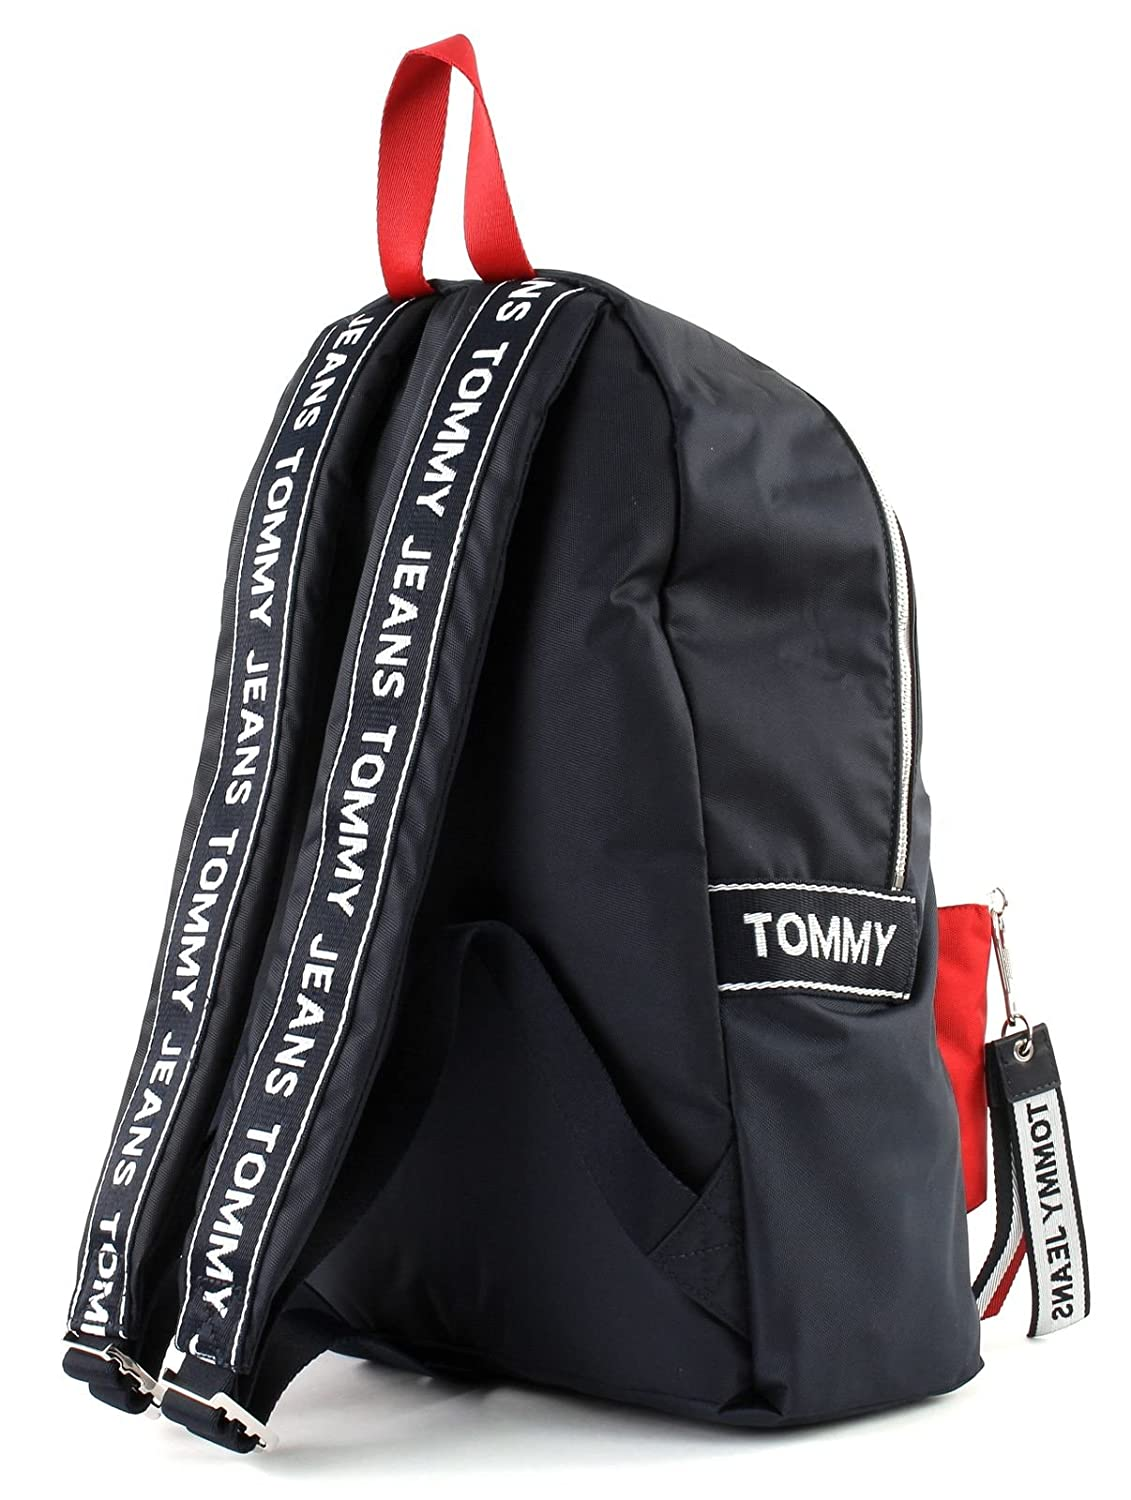 9e4dd7fd85 TOMMY HILFIGER Tommy Jeans Logo Backpack Corporate CB: Amazon.co.uk: Shoes  & Bags